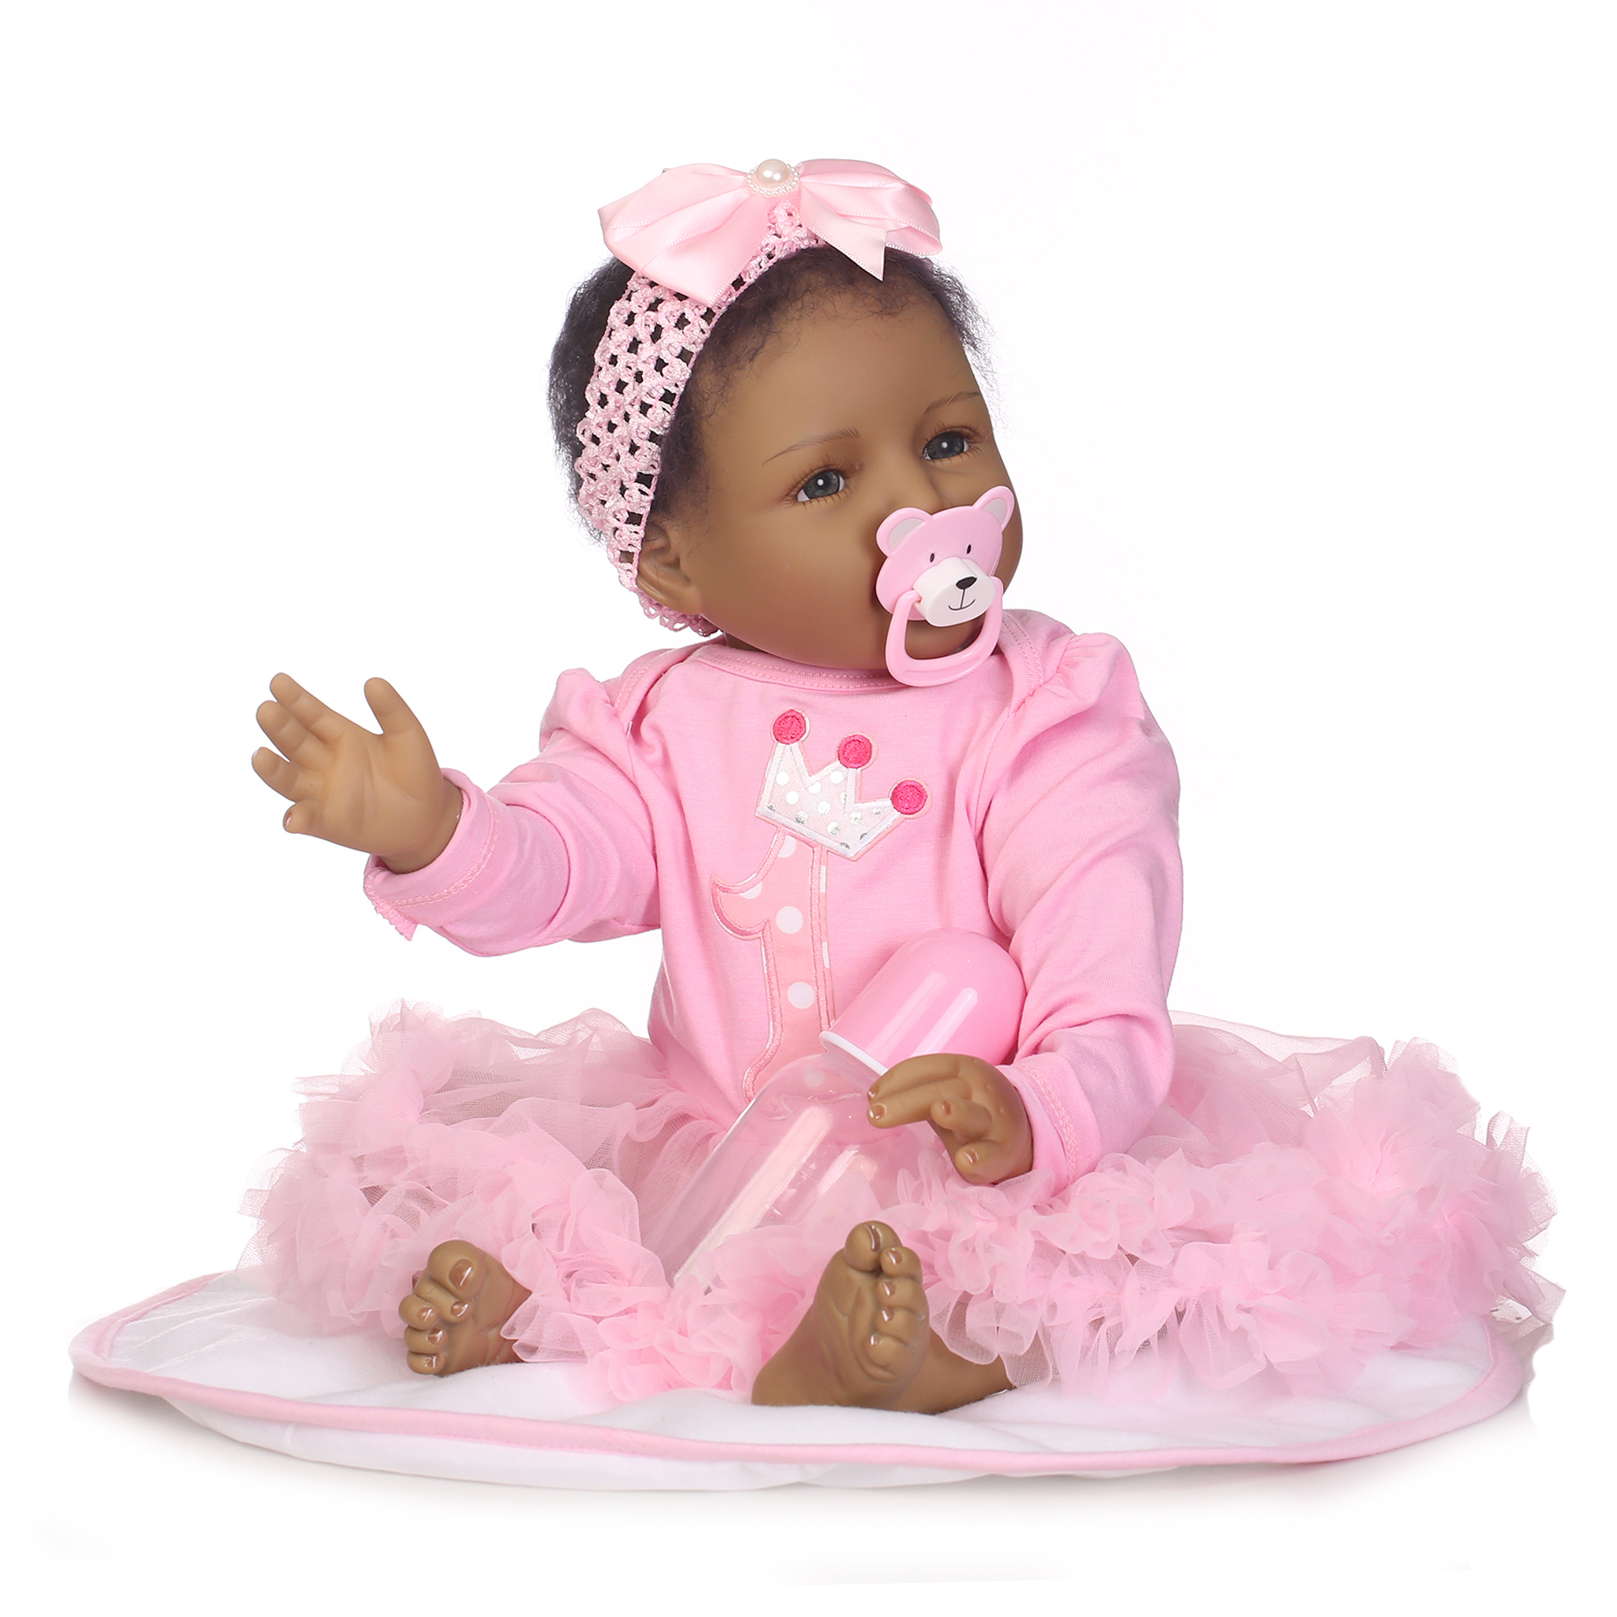 55cm 22 Silicone Reborn Girl Baby Dolls with Pink Princess Dress Cotton Body Newborn Boneca Toys Realistic Lifelike Baby Gift55cm 22 Silicone Reborn Girl Baby Dolls with Pink Princess Dress Cotton Body Newborn Boneca Toys Realistic Lifelike Baby Gift